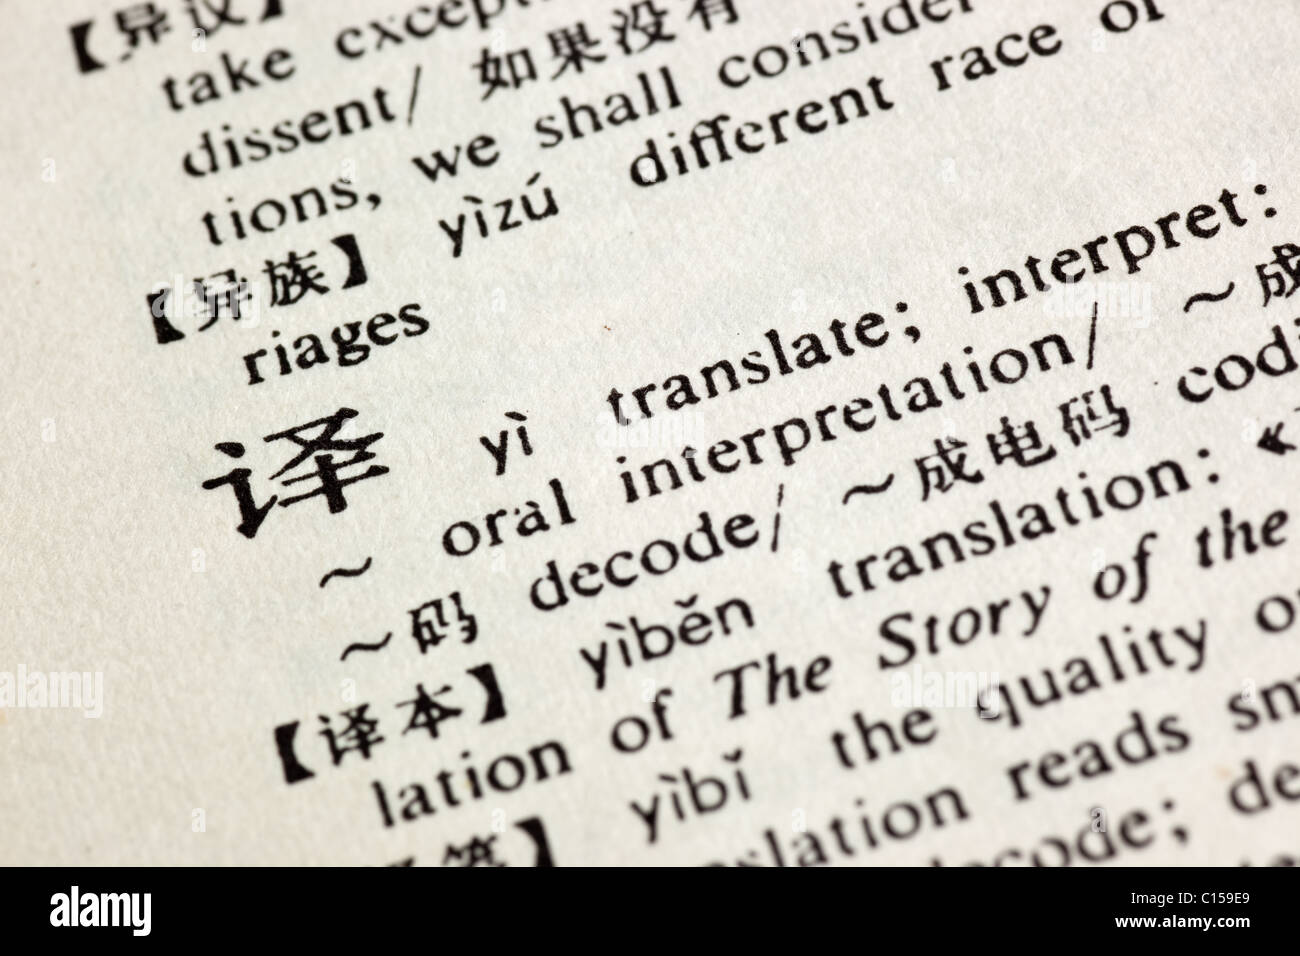 Translate written in Chinese in a Chinese-English translation dictionary - Stock Image